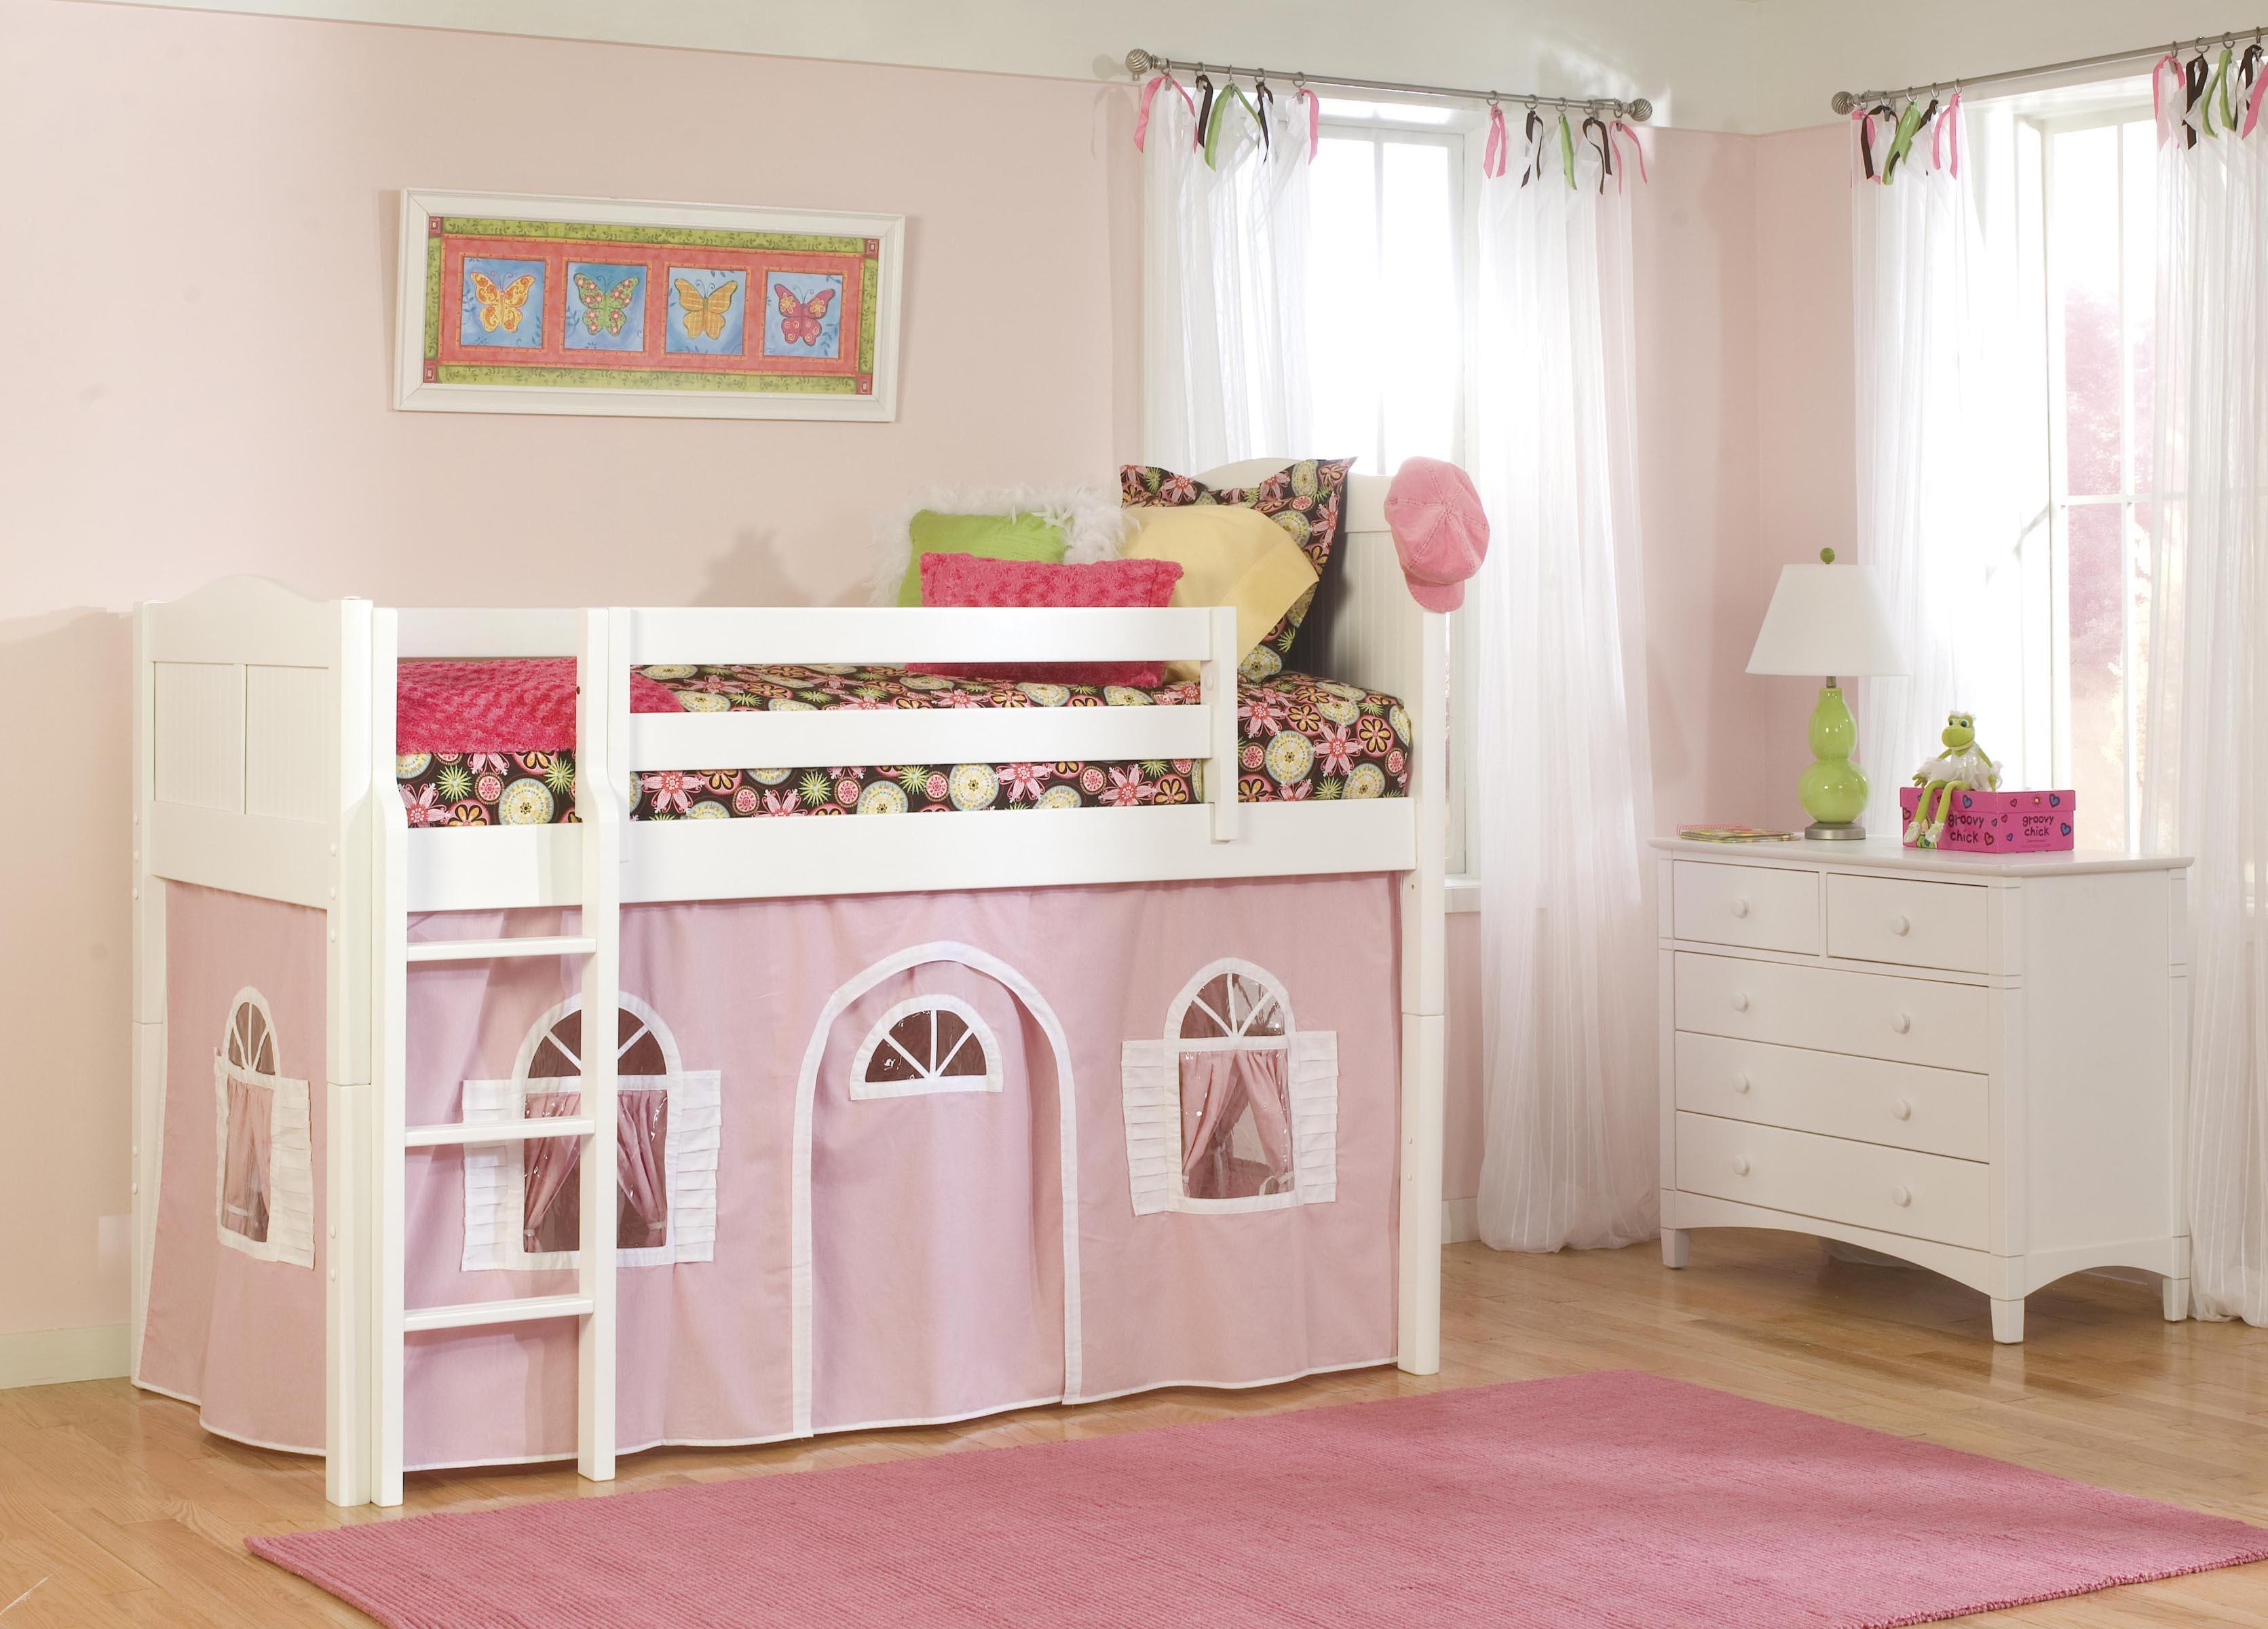 Bolton Mulberry -- Mulberry Twin Loft Bed with Bottom Tent - Item Number: 475181500